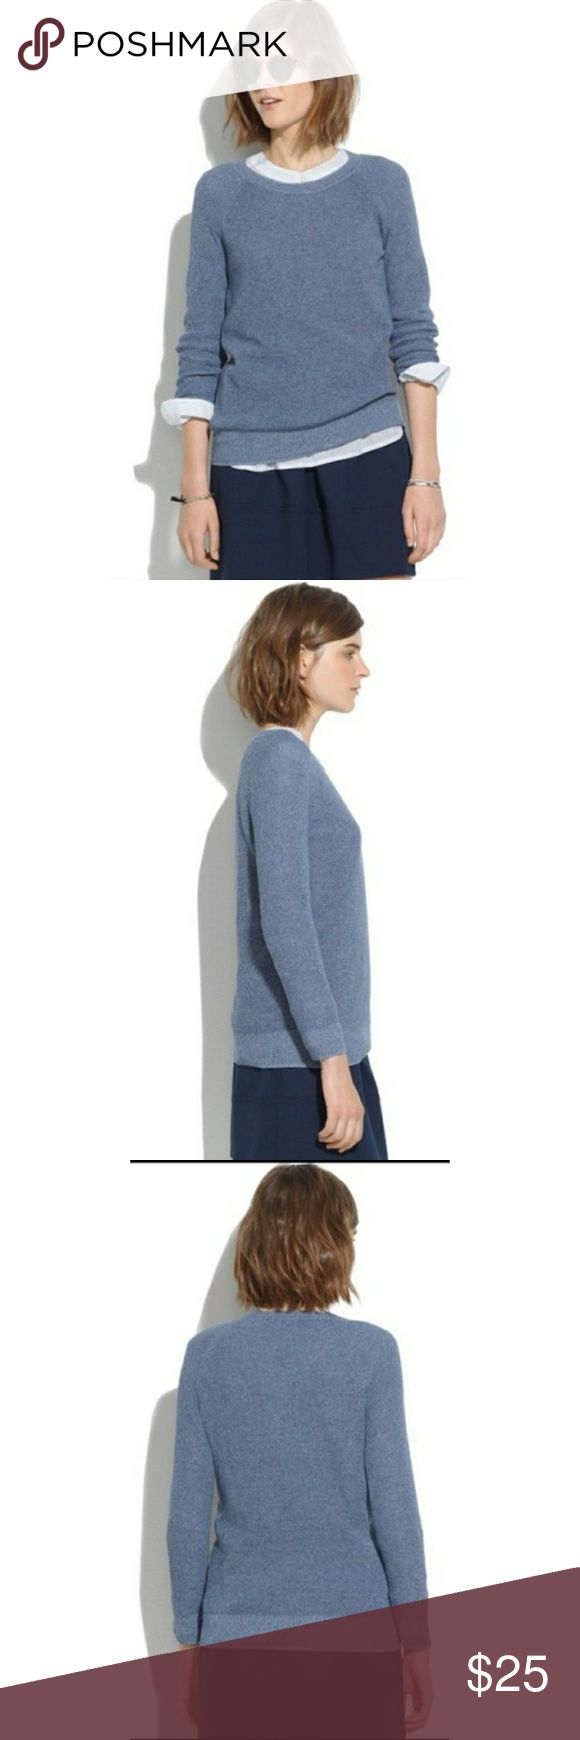 96a17923060 Madewell Bridgeview Pull over sweater Excellent condition